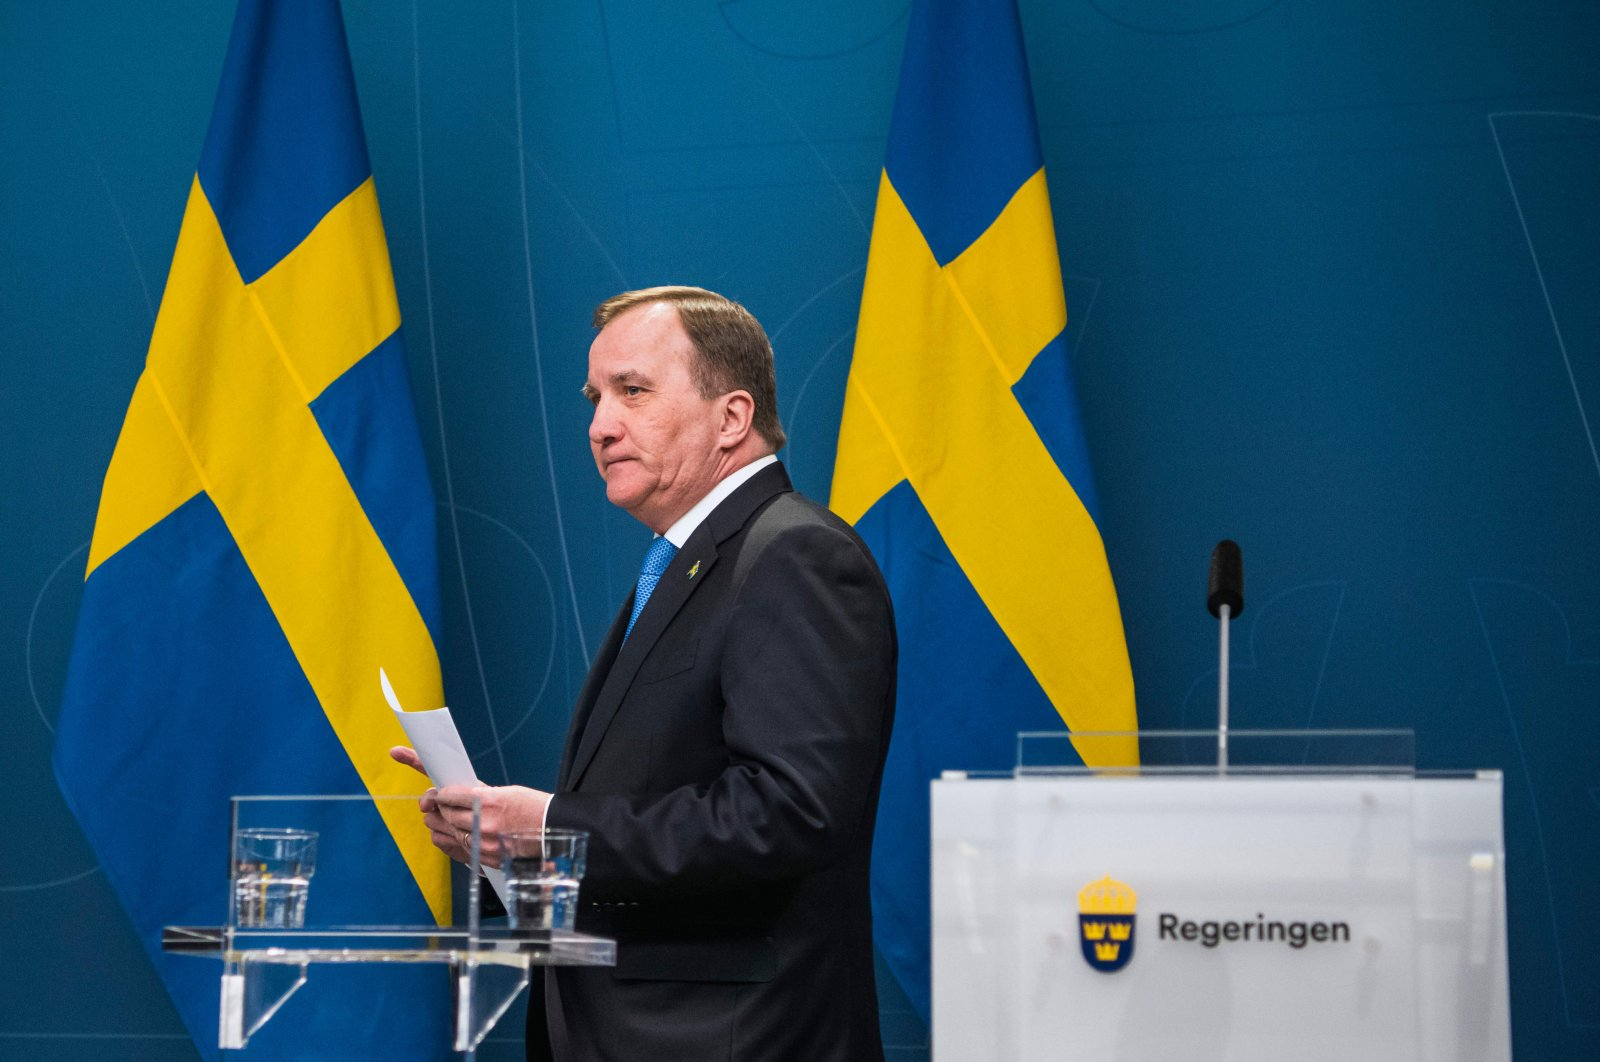 Swedish Prime Minister Stefan Lofven attends a press conference about the COVID-19 pandemic at the government's headquarters in Stockholm, Sweden, Tuesday, March 31, 2020. (AFP Photo)